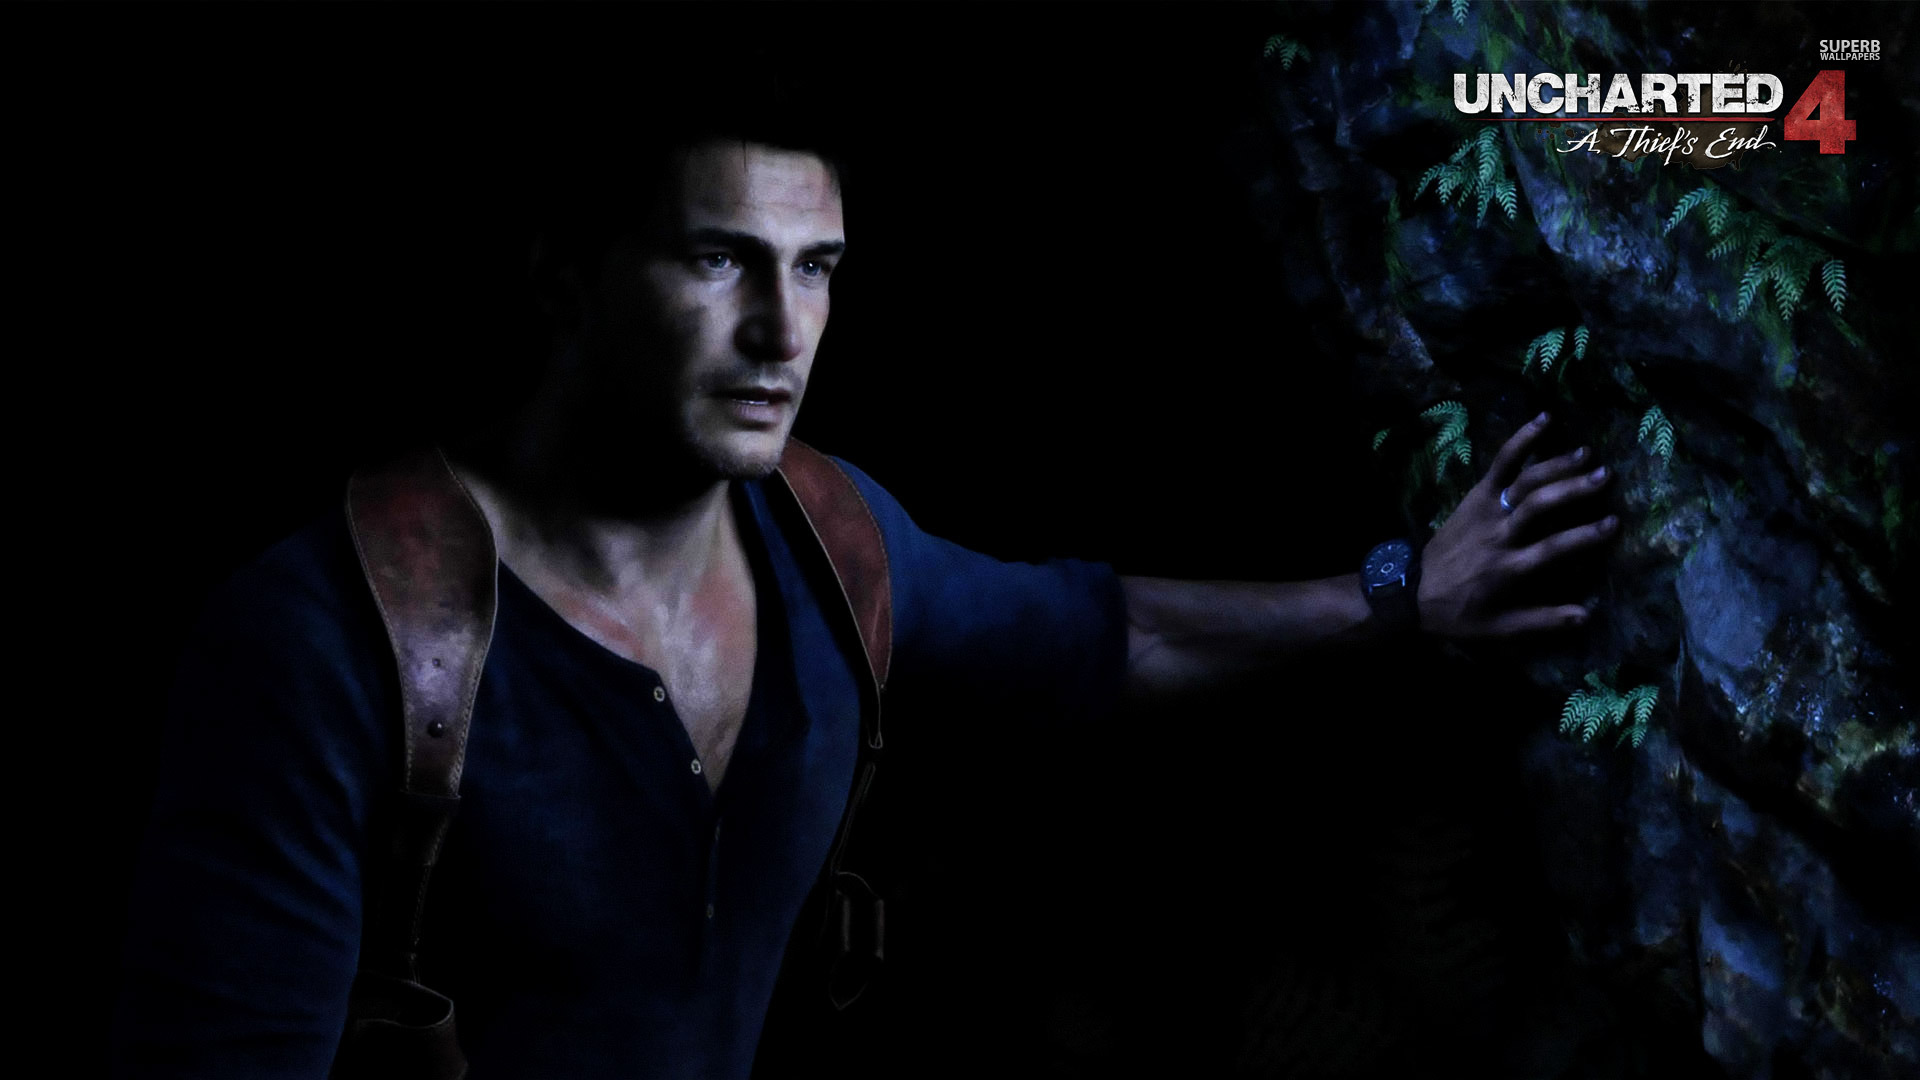 nathan-drake-uncharted-4-a-thiefs-end-43918-1920x1080